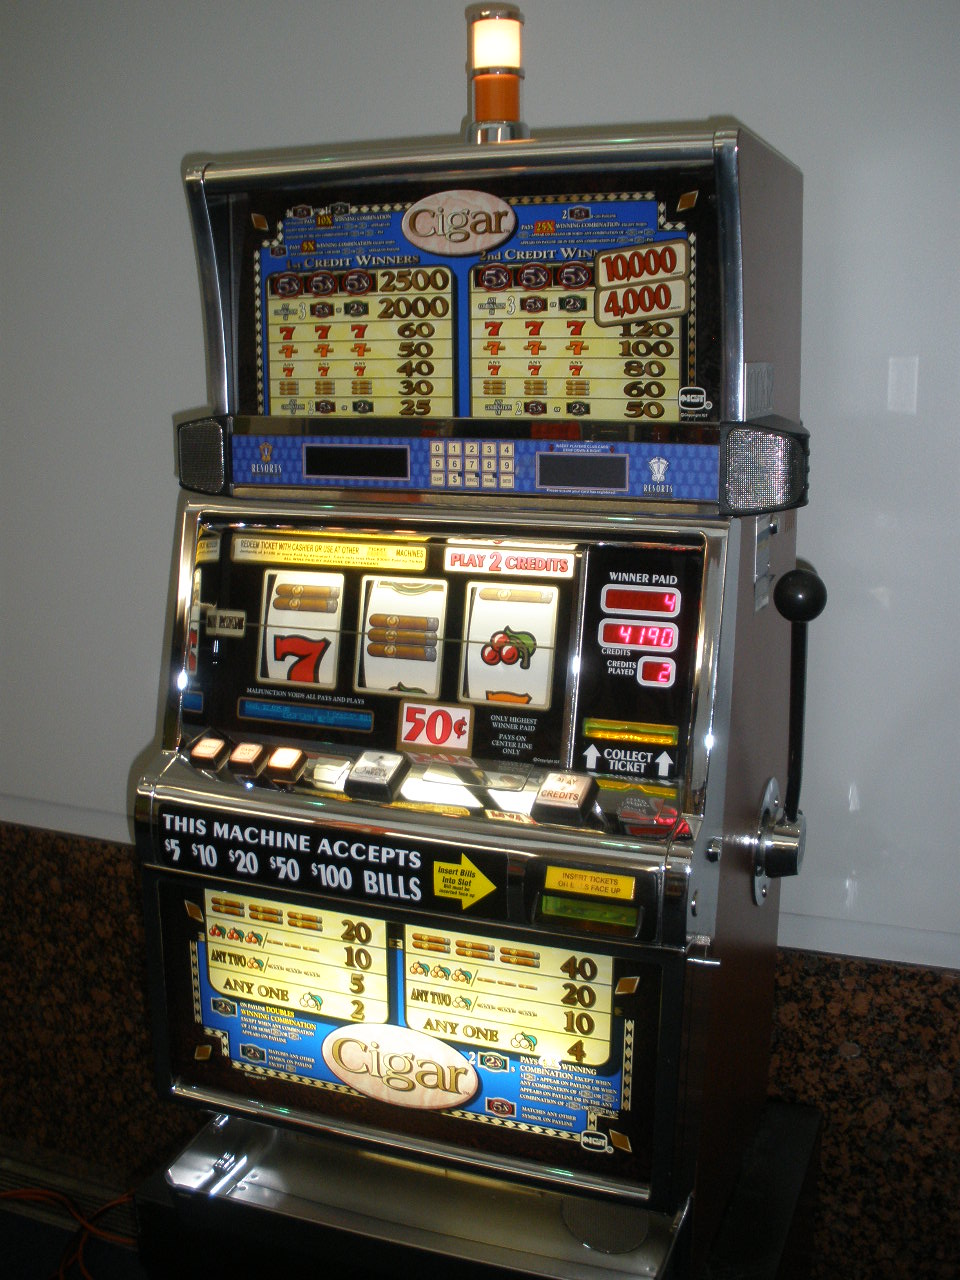 IGT CIGAR S2000 SLOT MACHINE For Sale • Gambler's Oasis USA